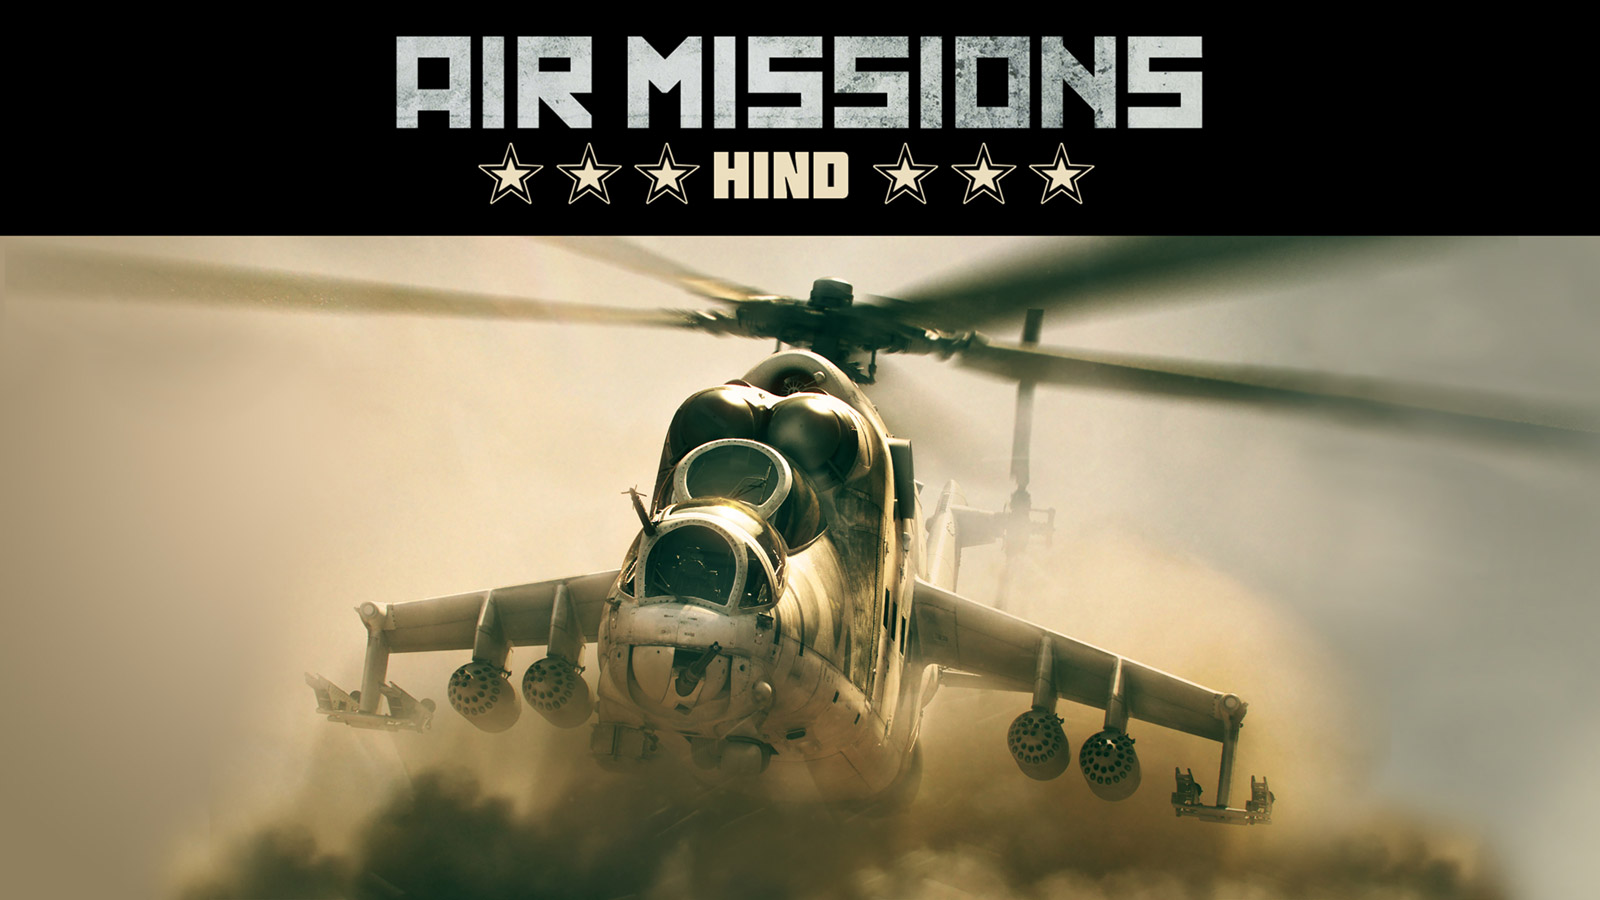 Free Air Missions: HIND Wallpaper in 1600x900